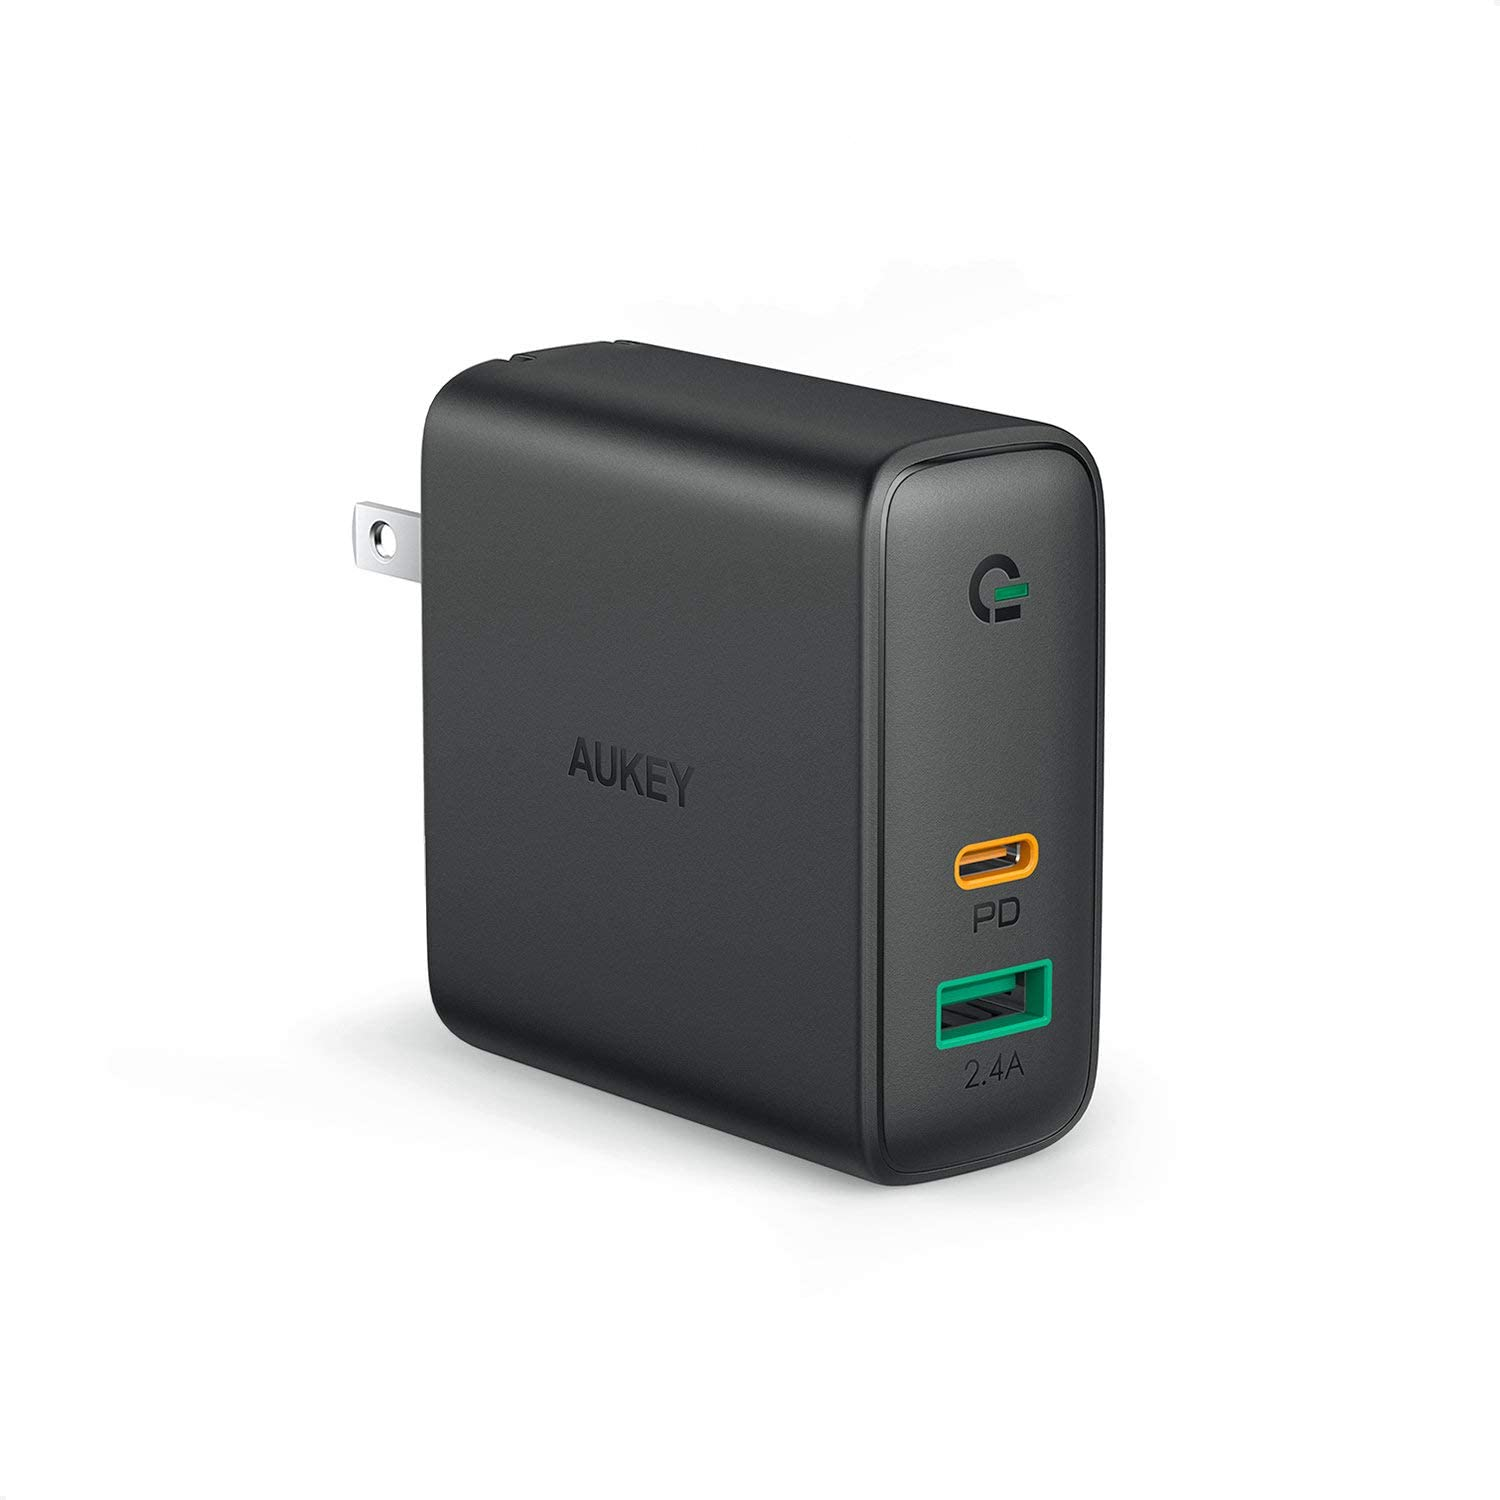 """AUKEY 60W PD Charger, USB C Wall Charger with Dynamic Detect & Power Delivery 3.0 [GaNTech] Fast USBCCharger for MacBook Pro 13"""", iPad Pro, iPhone 11 Pro Max, iPhoneSE, Pixel 4/4X, Airpods Pro"""